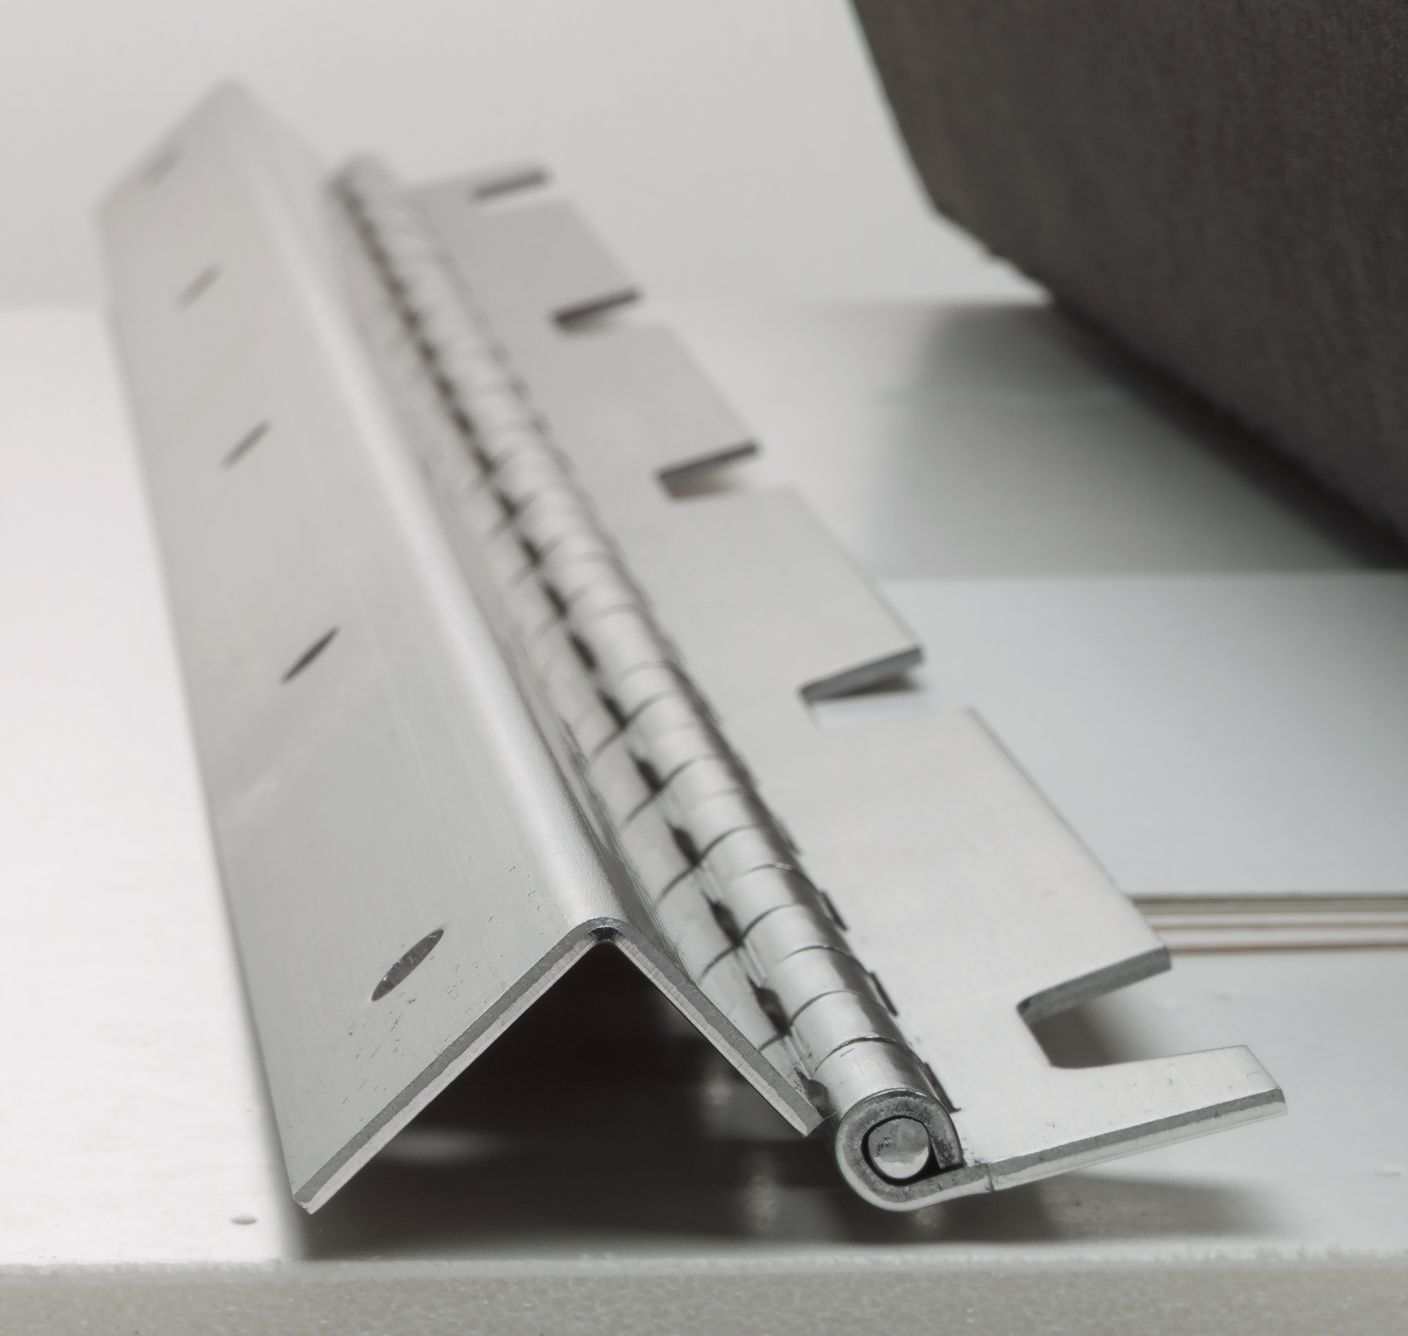 Additional Continuous Piano Hinge Design Information